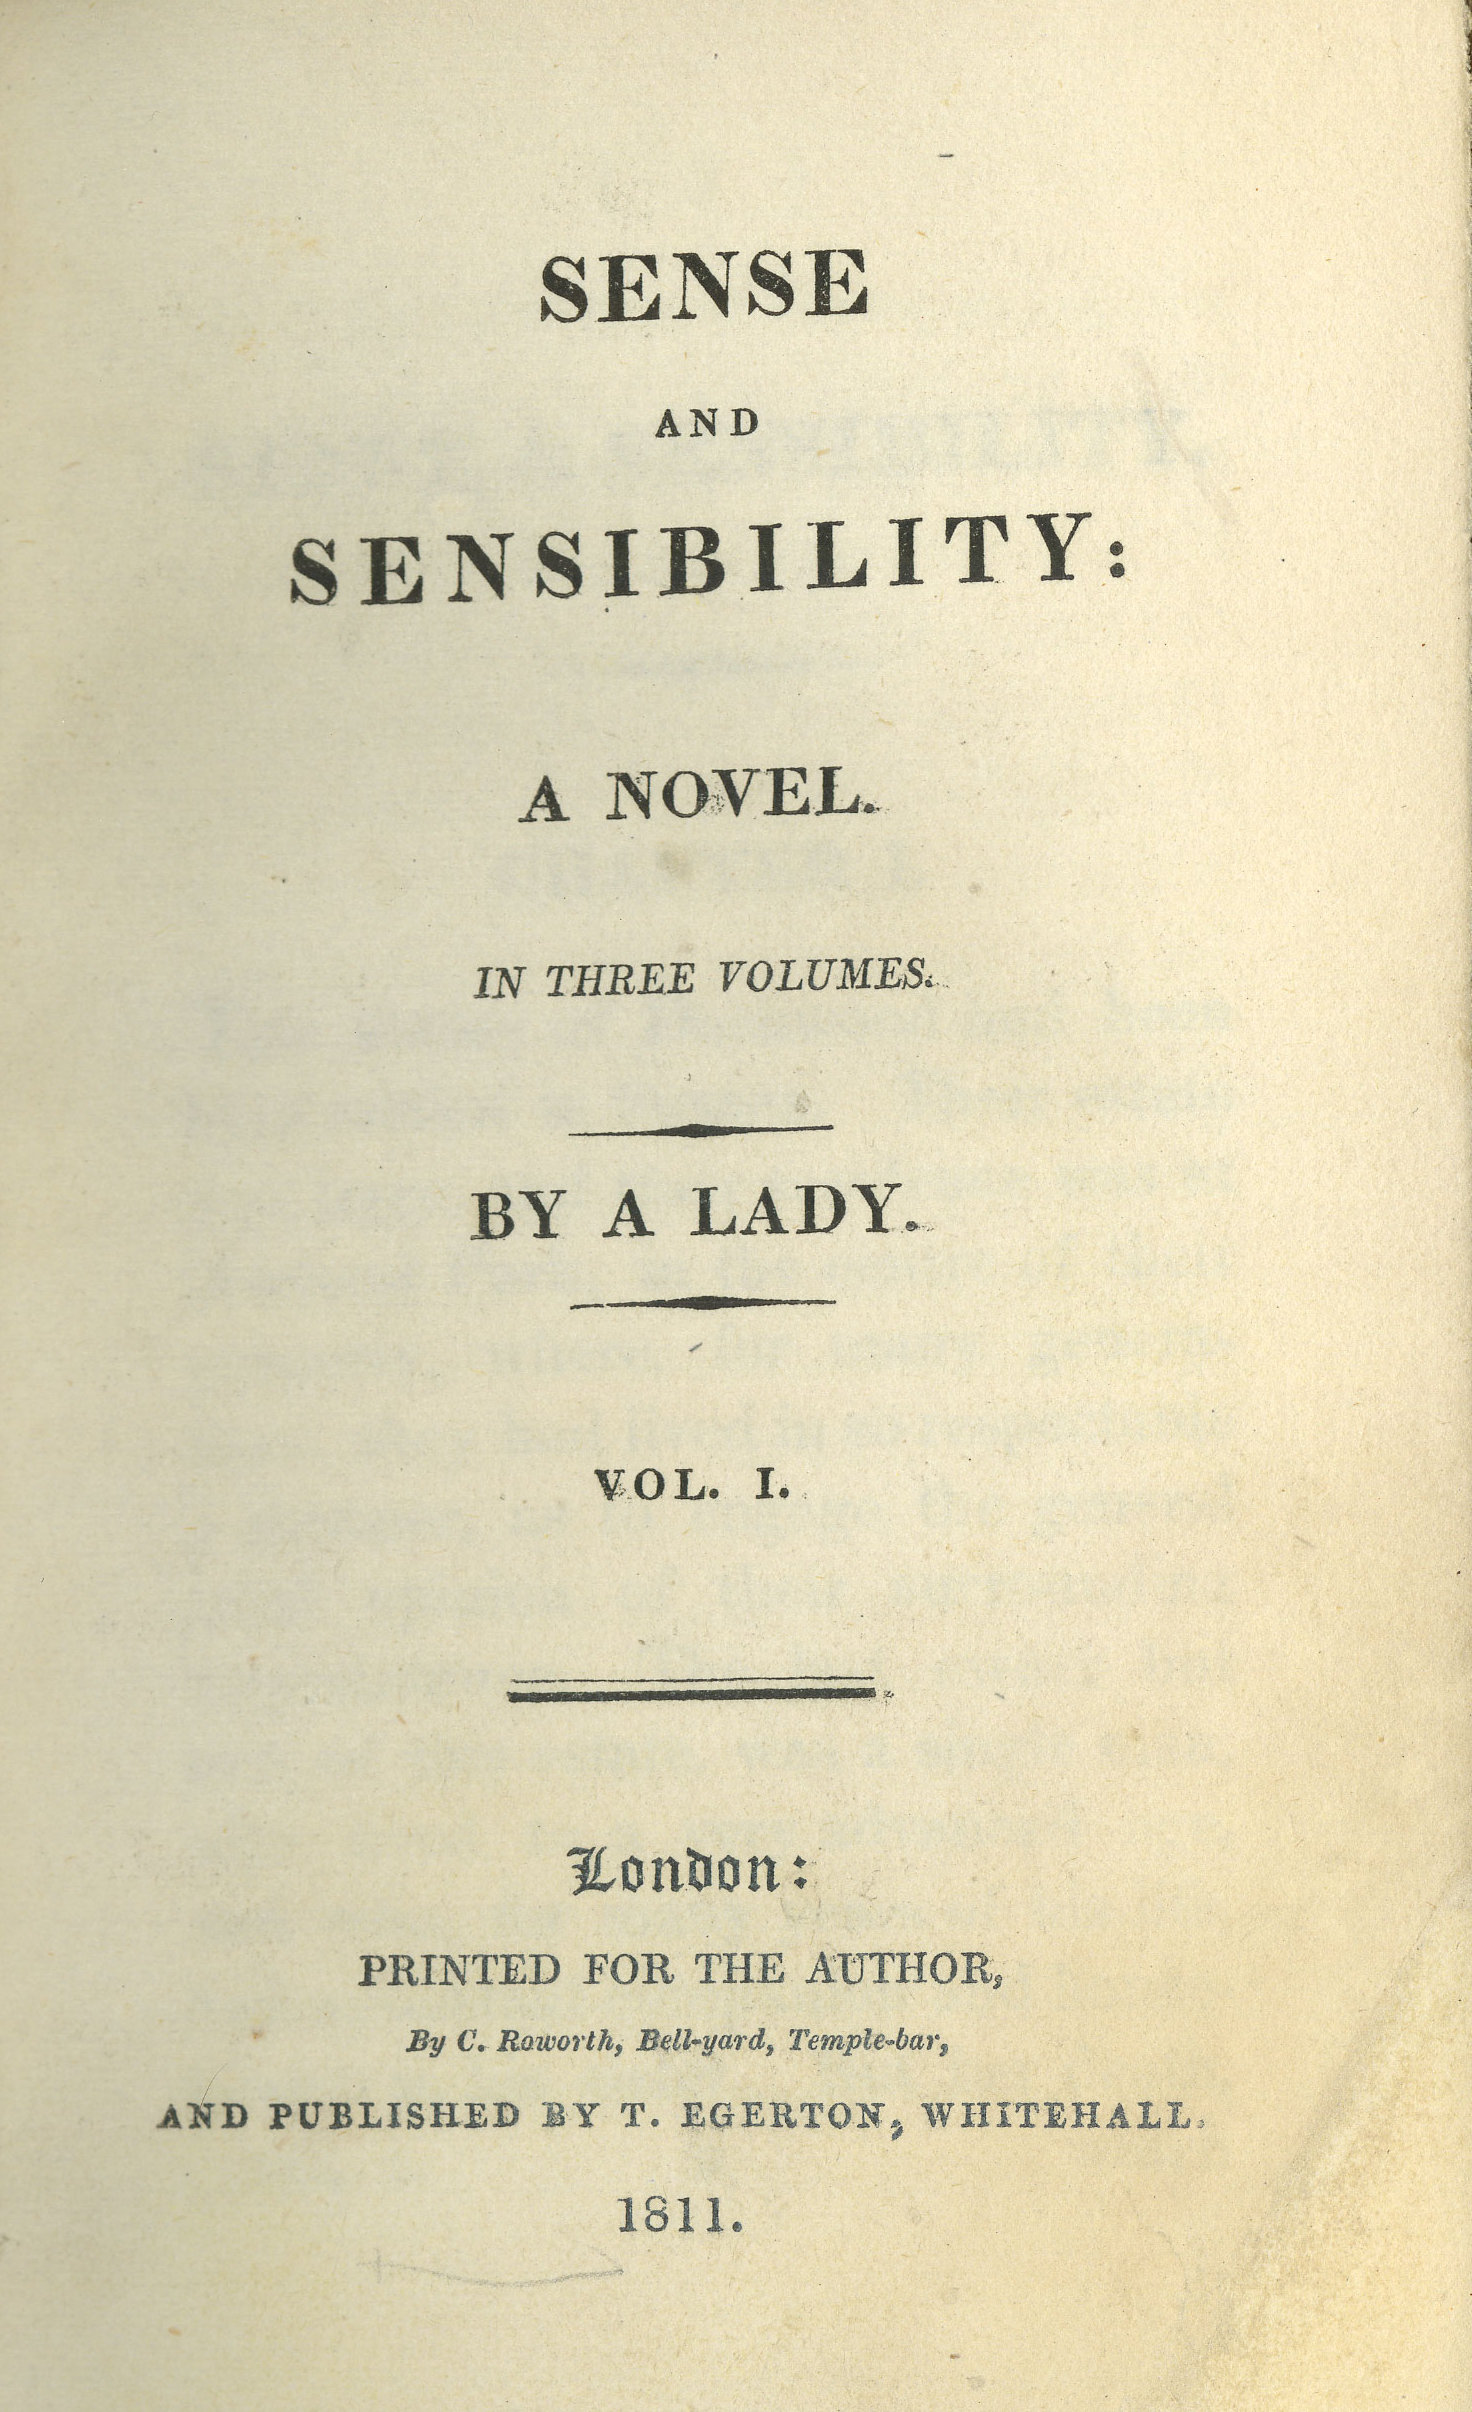 Science In Daily Life Essay Title Page From The First Edition Of Jane Austens Novel Sense And  Sensibility Examples Of Essays For High School also Best Essays In English Marriage And Society  An Essay That Analyzes Jane Austens  English Essay Story